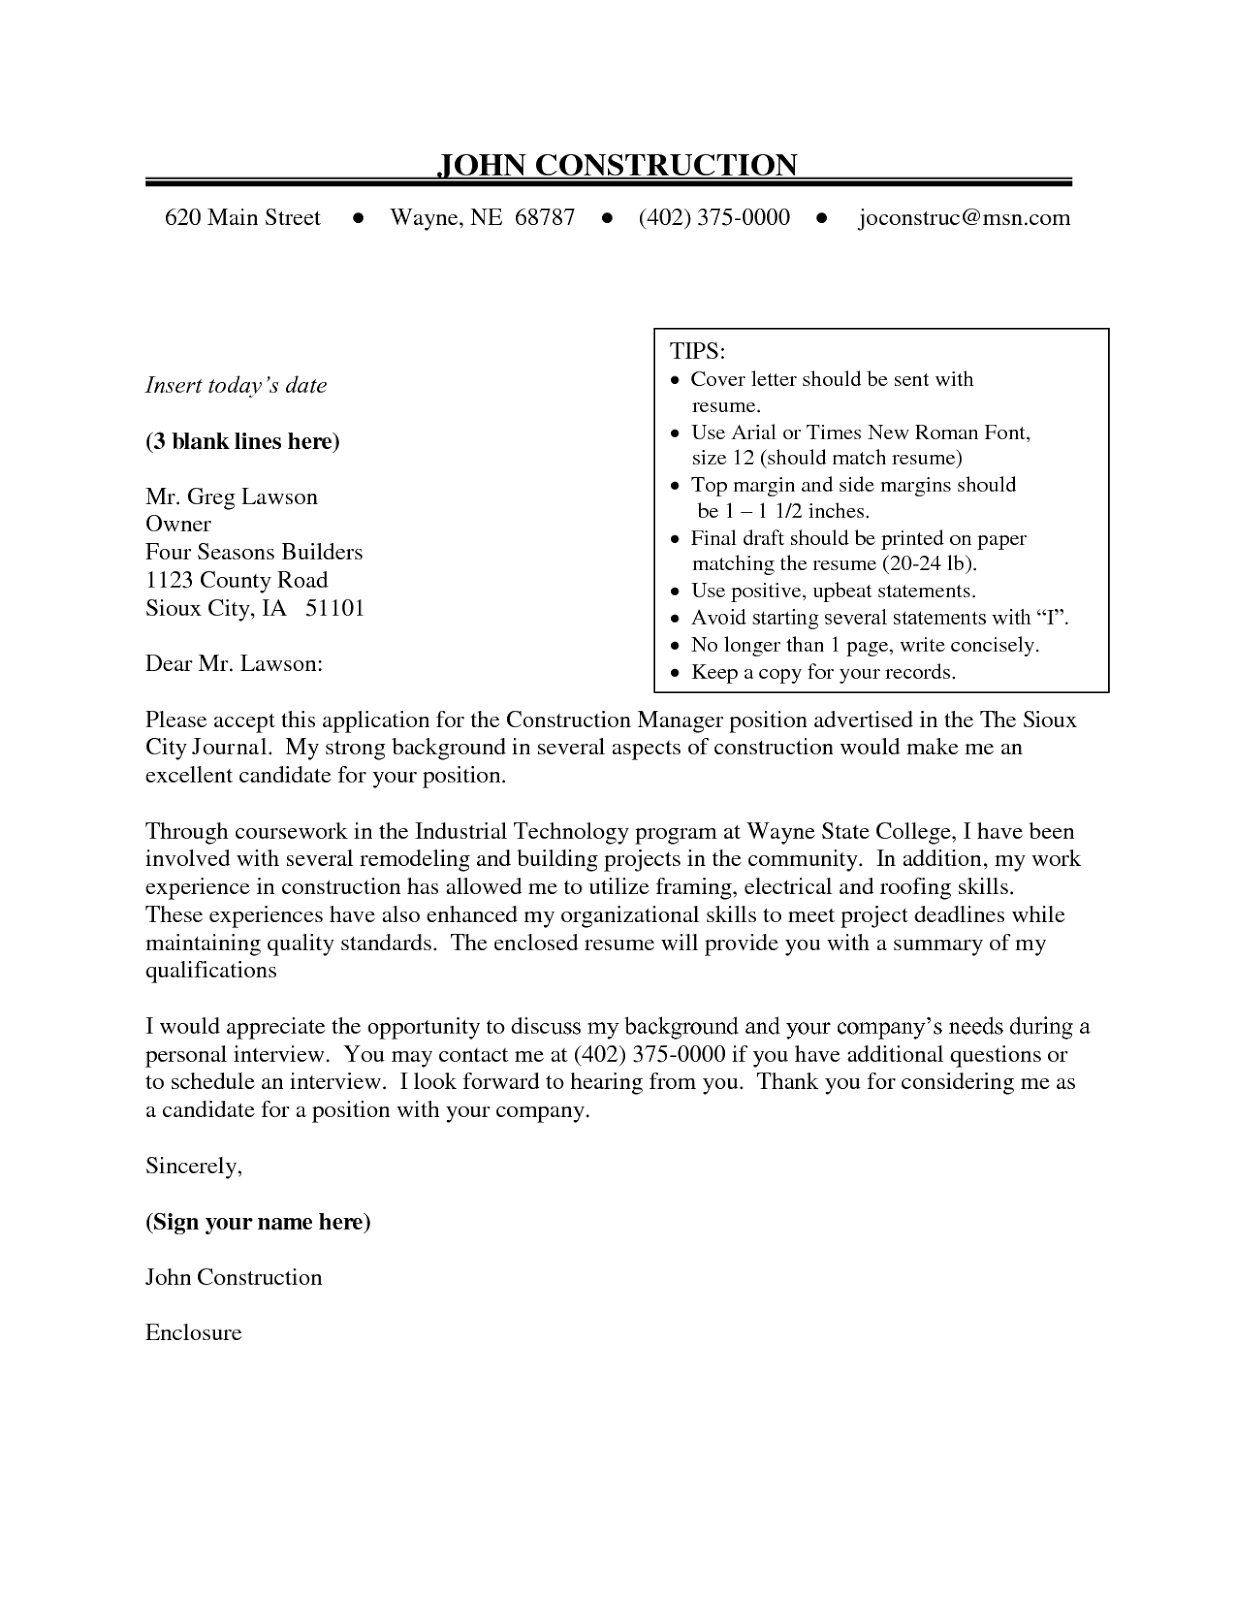 angela koller dissertation general consideration cover letter good ...